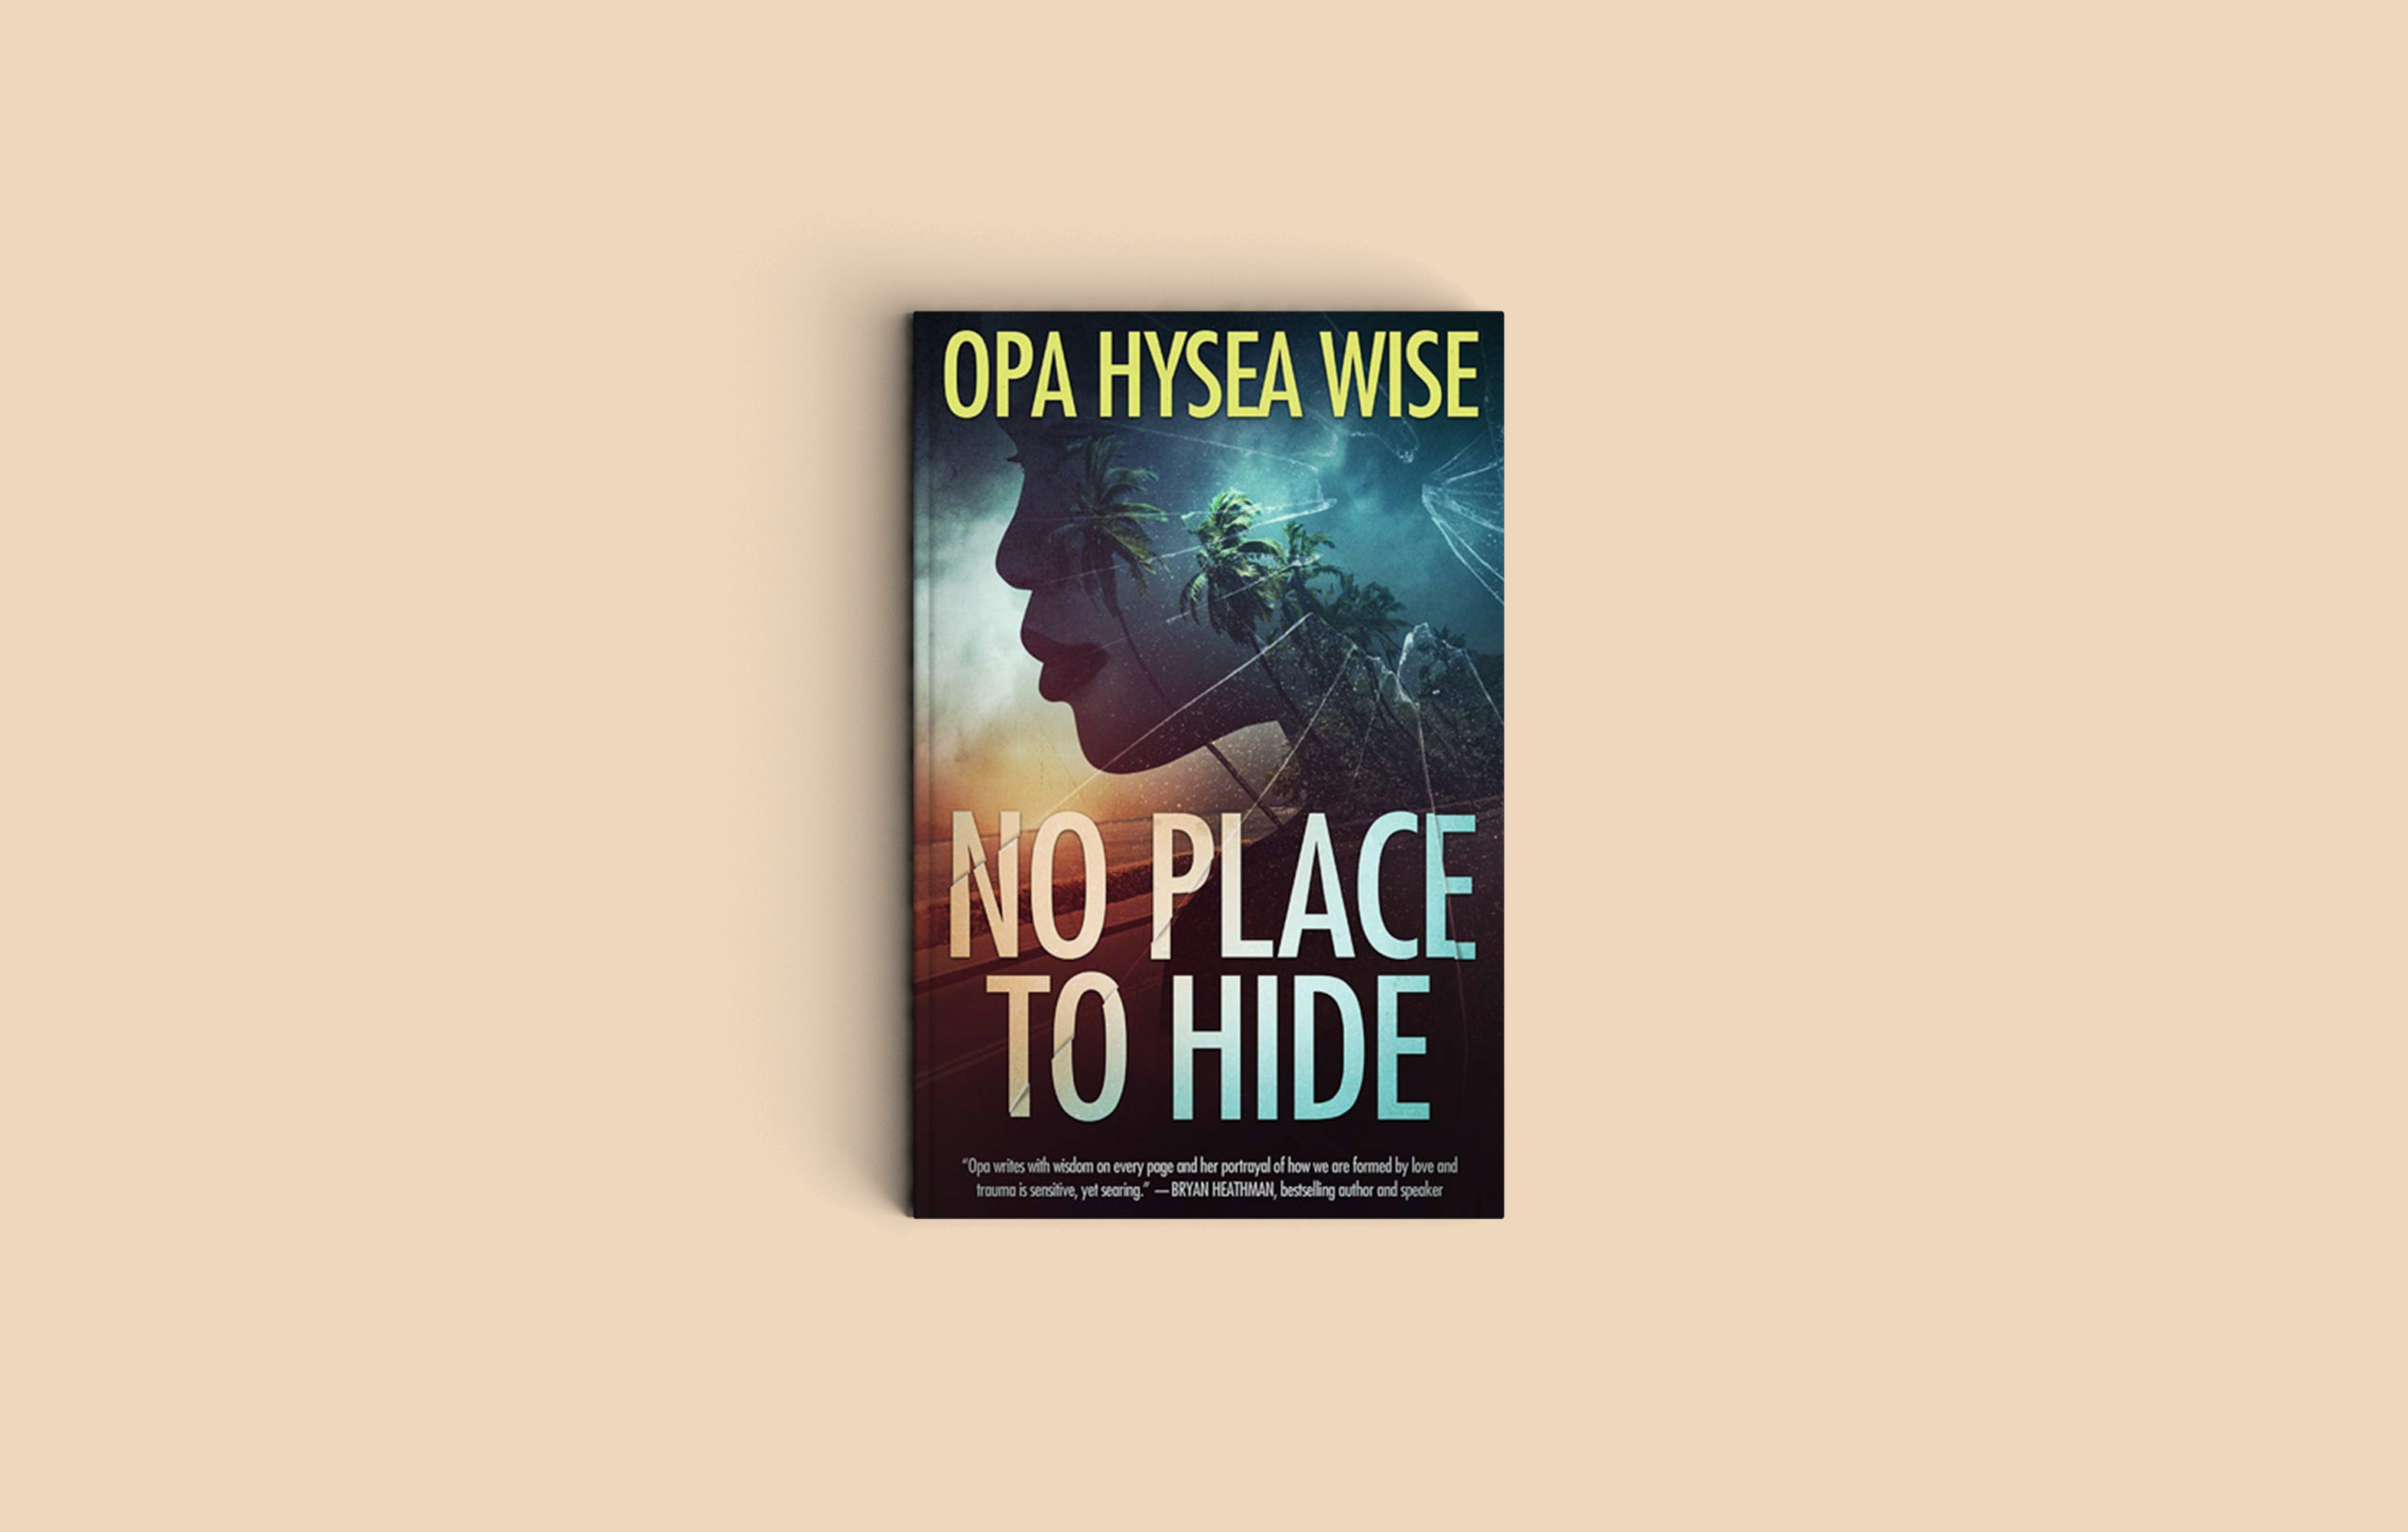 no-place-to-hide-by-opa-hysea-wise-featured-image